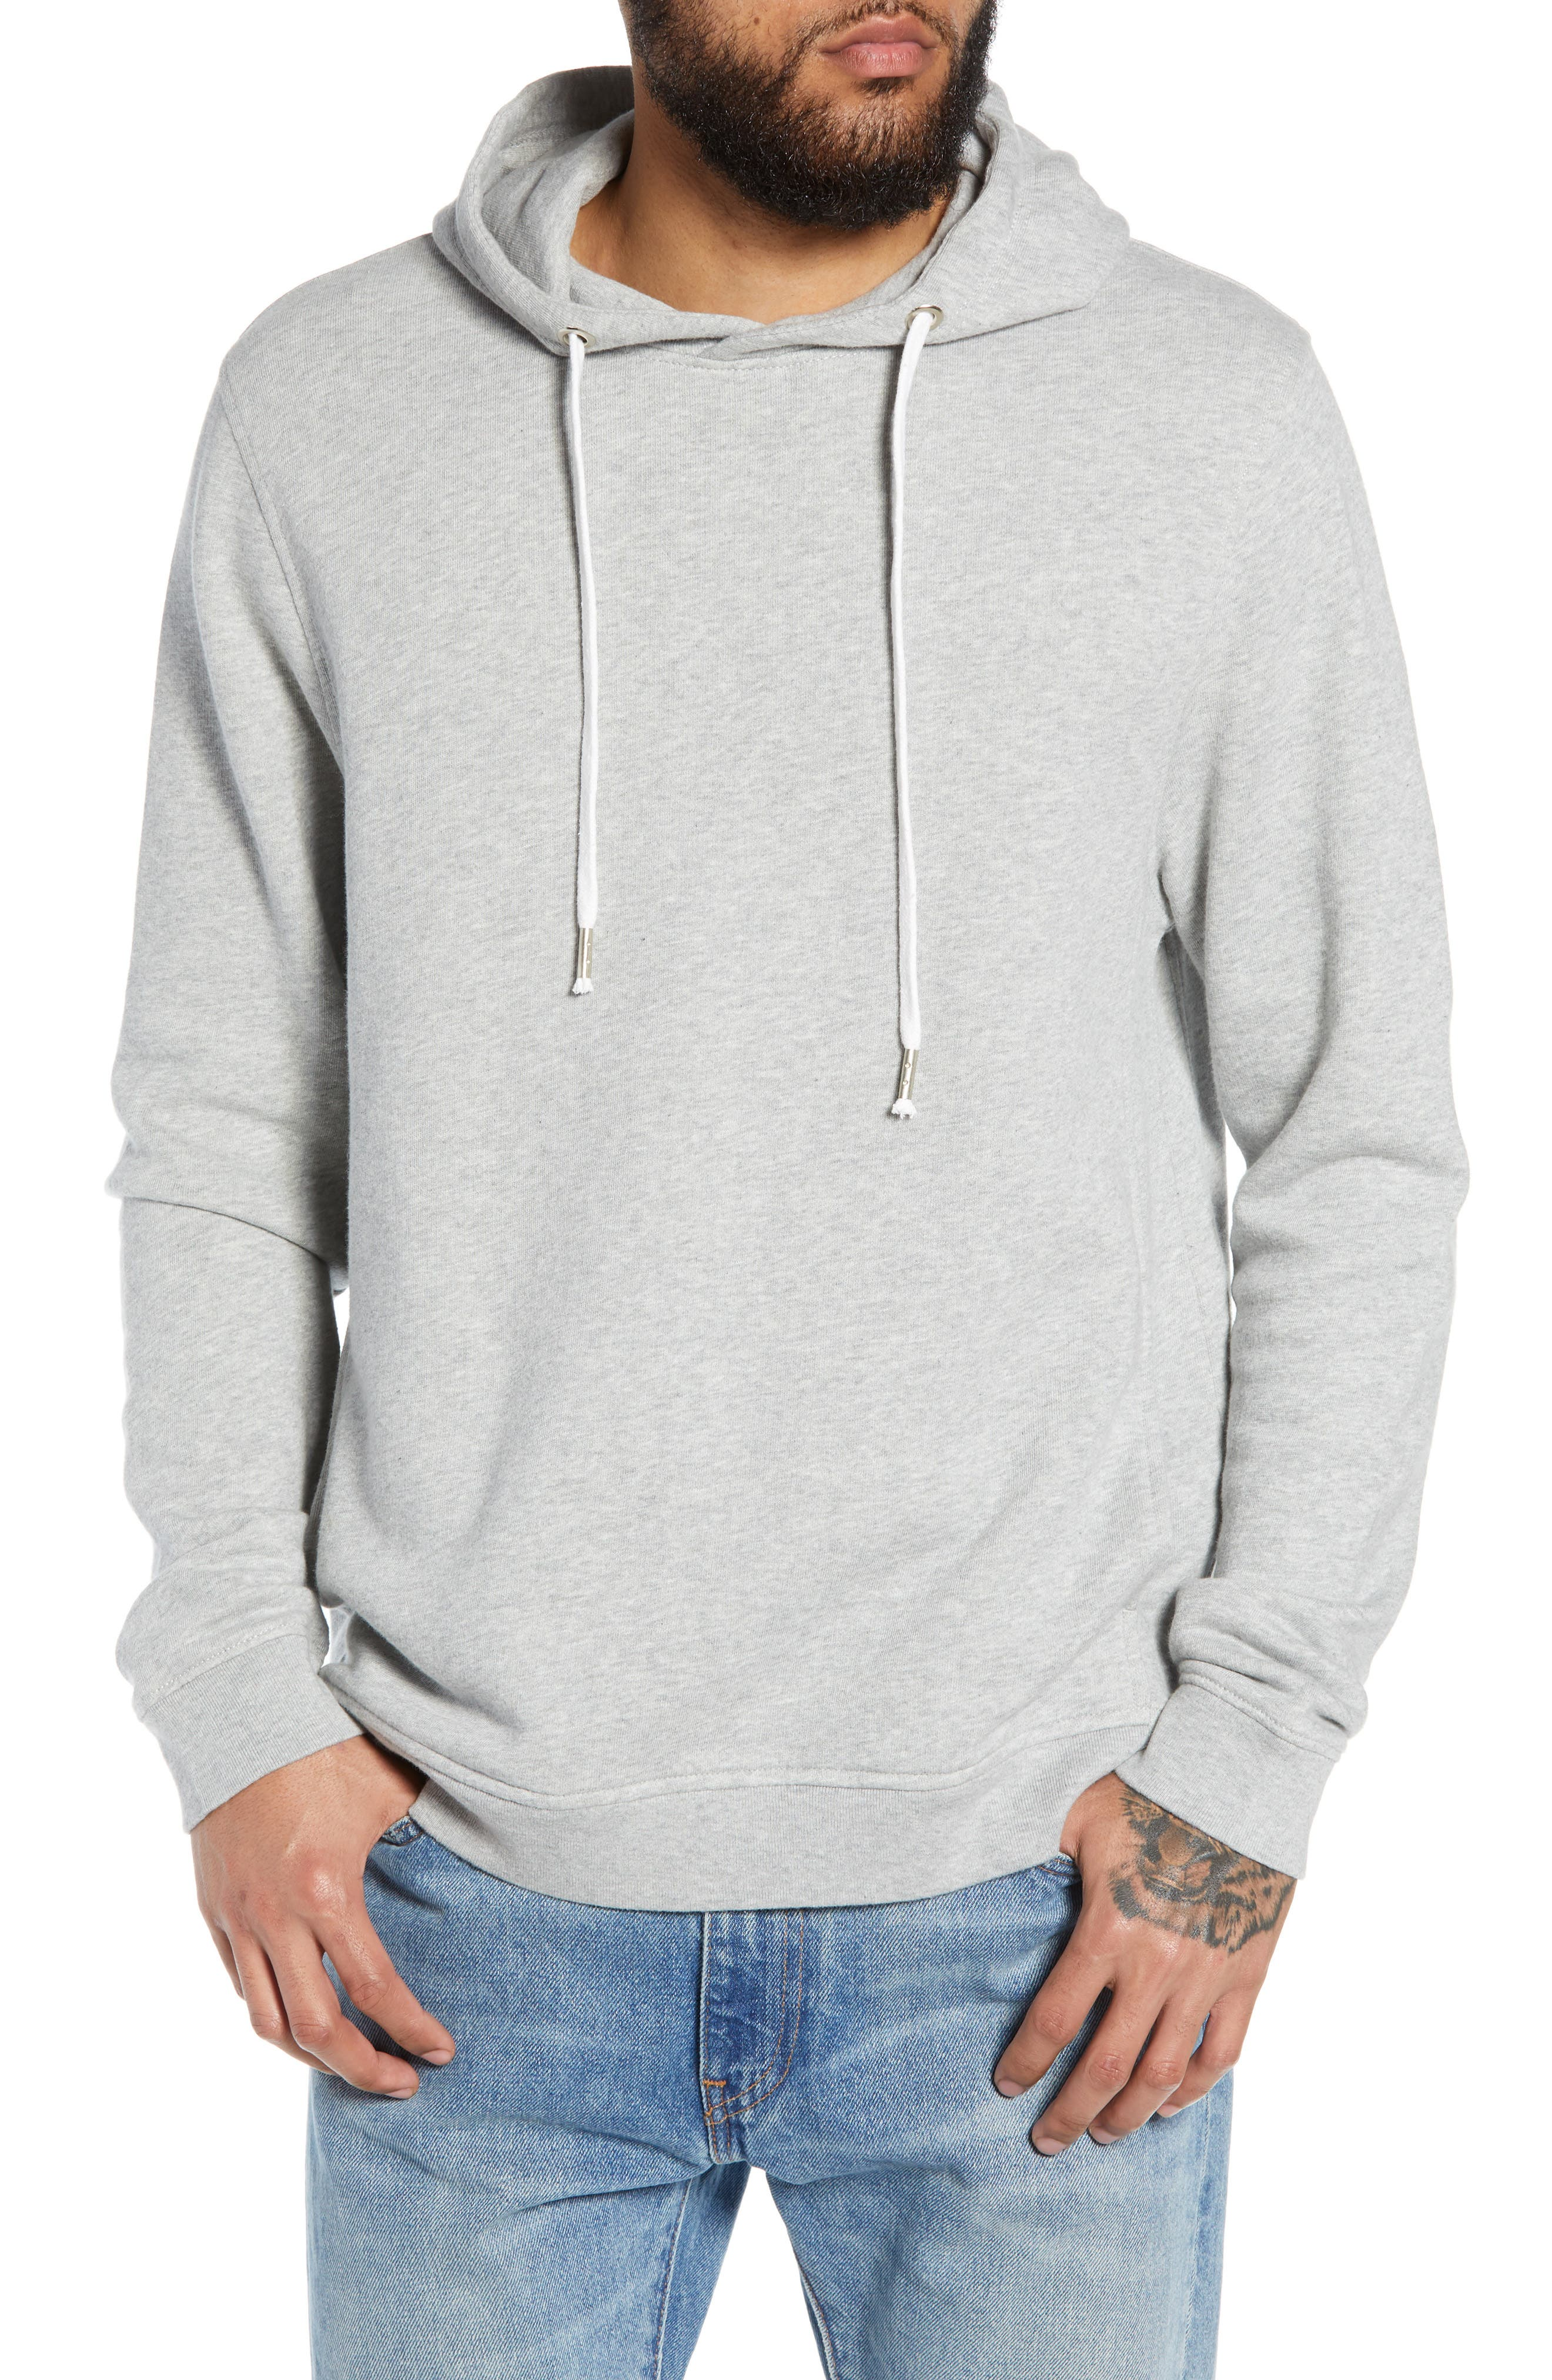 THE RAIL Heather Sunfaded Hoodie, Main, color, GREY ASH HEATHER